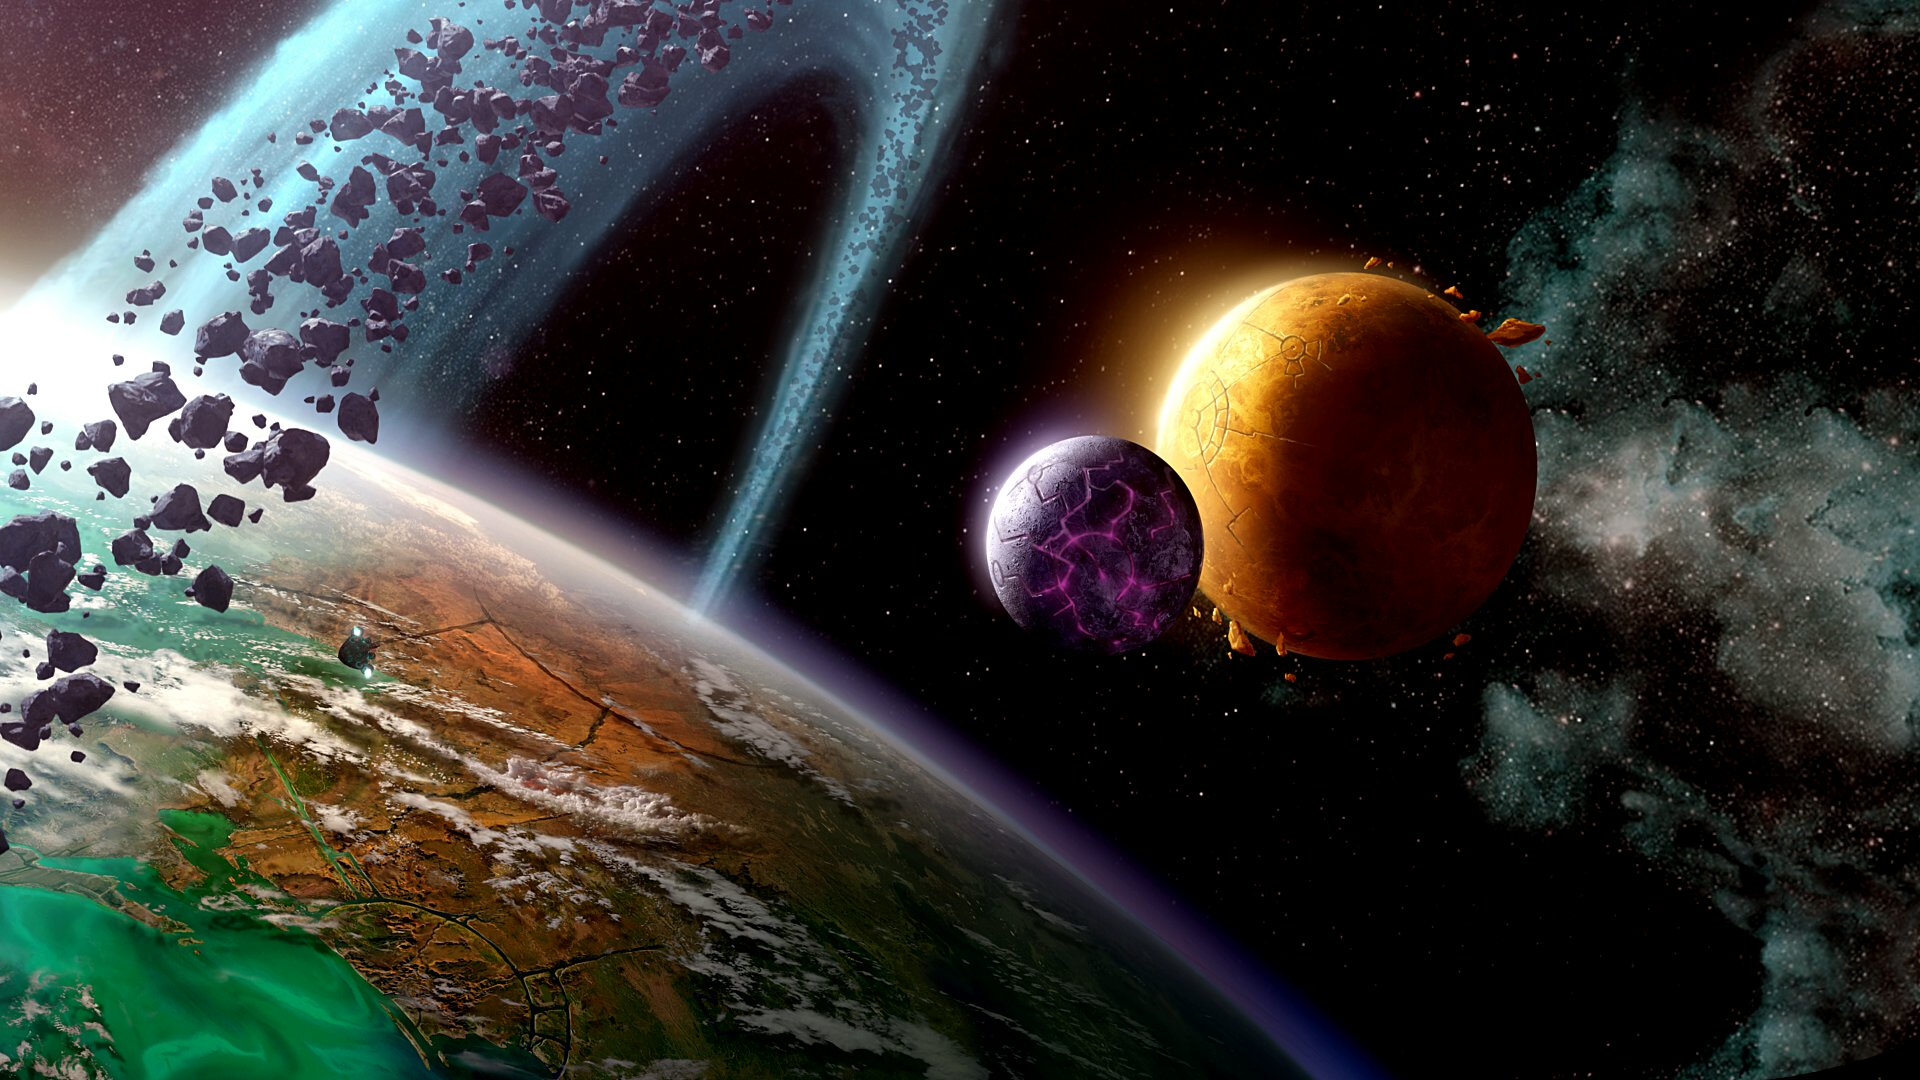 wallpaper space planet the - photo #7